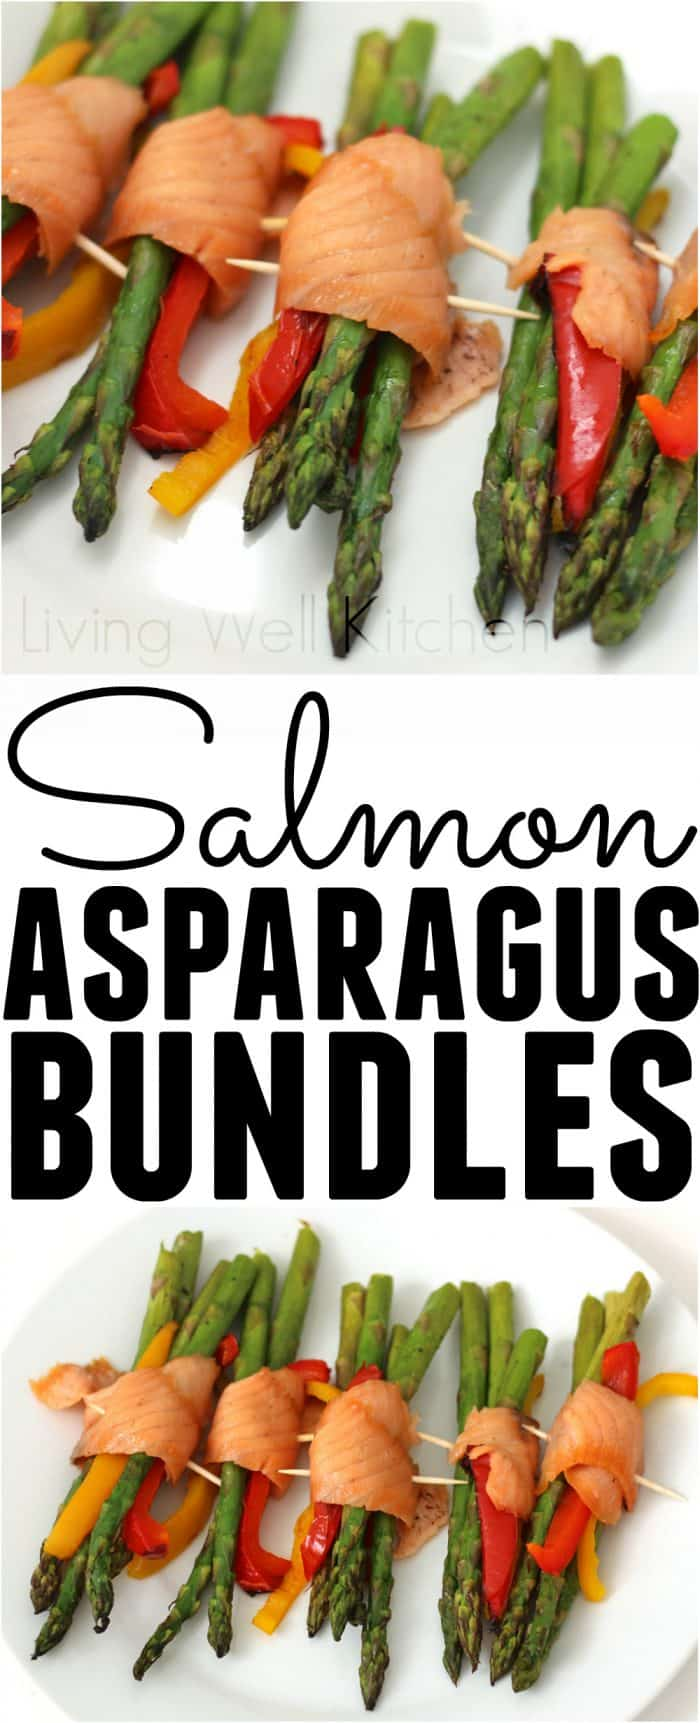 Salmon Asparagus Bundles from @memeinge are a tasty, simple, elegant, and healthy appetizer or light lunch. Gluten free, dairy free, and low carb, these are a protein filled meal that will nourish your body while tasting great!